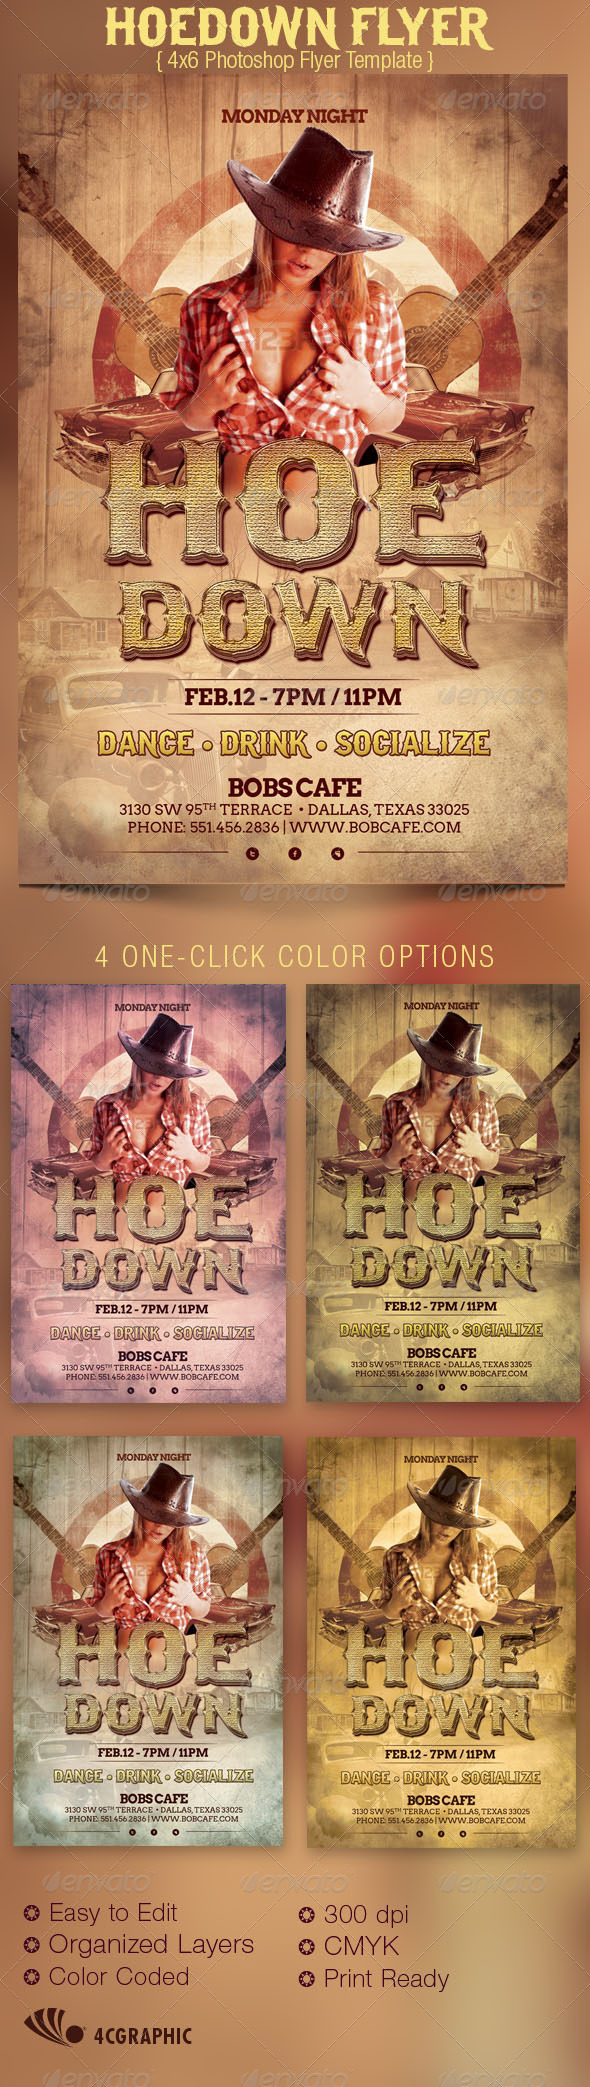 GraphicRiver Hoedown Country Flyer Template 3442895